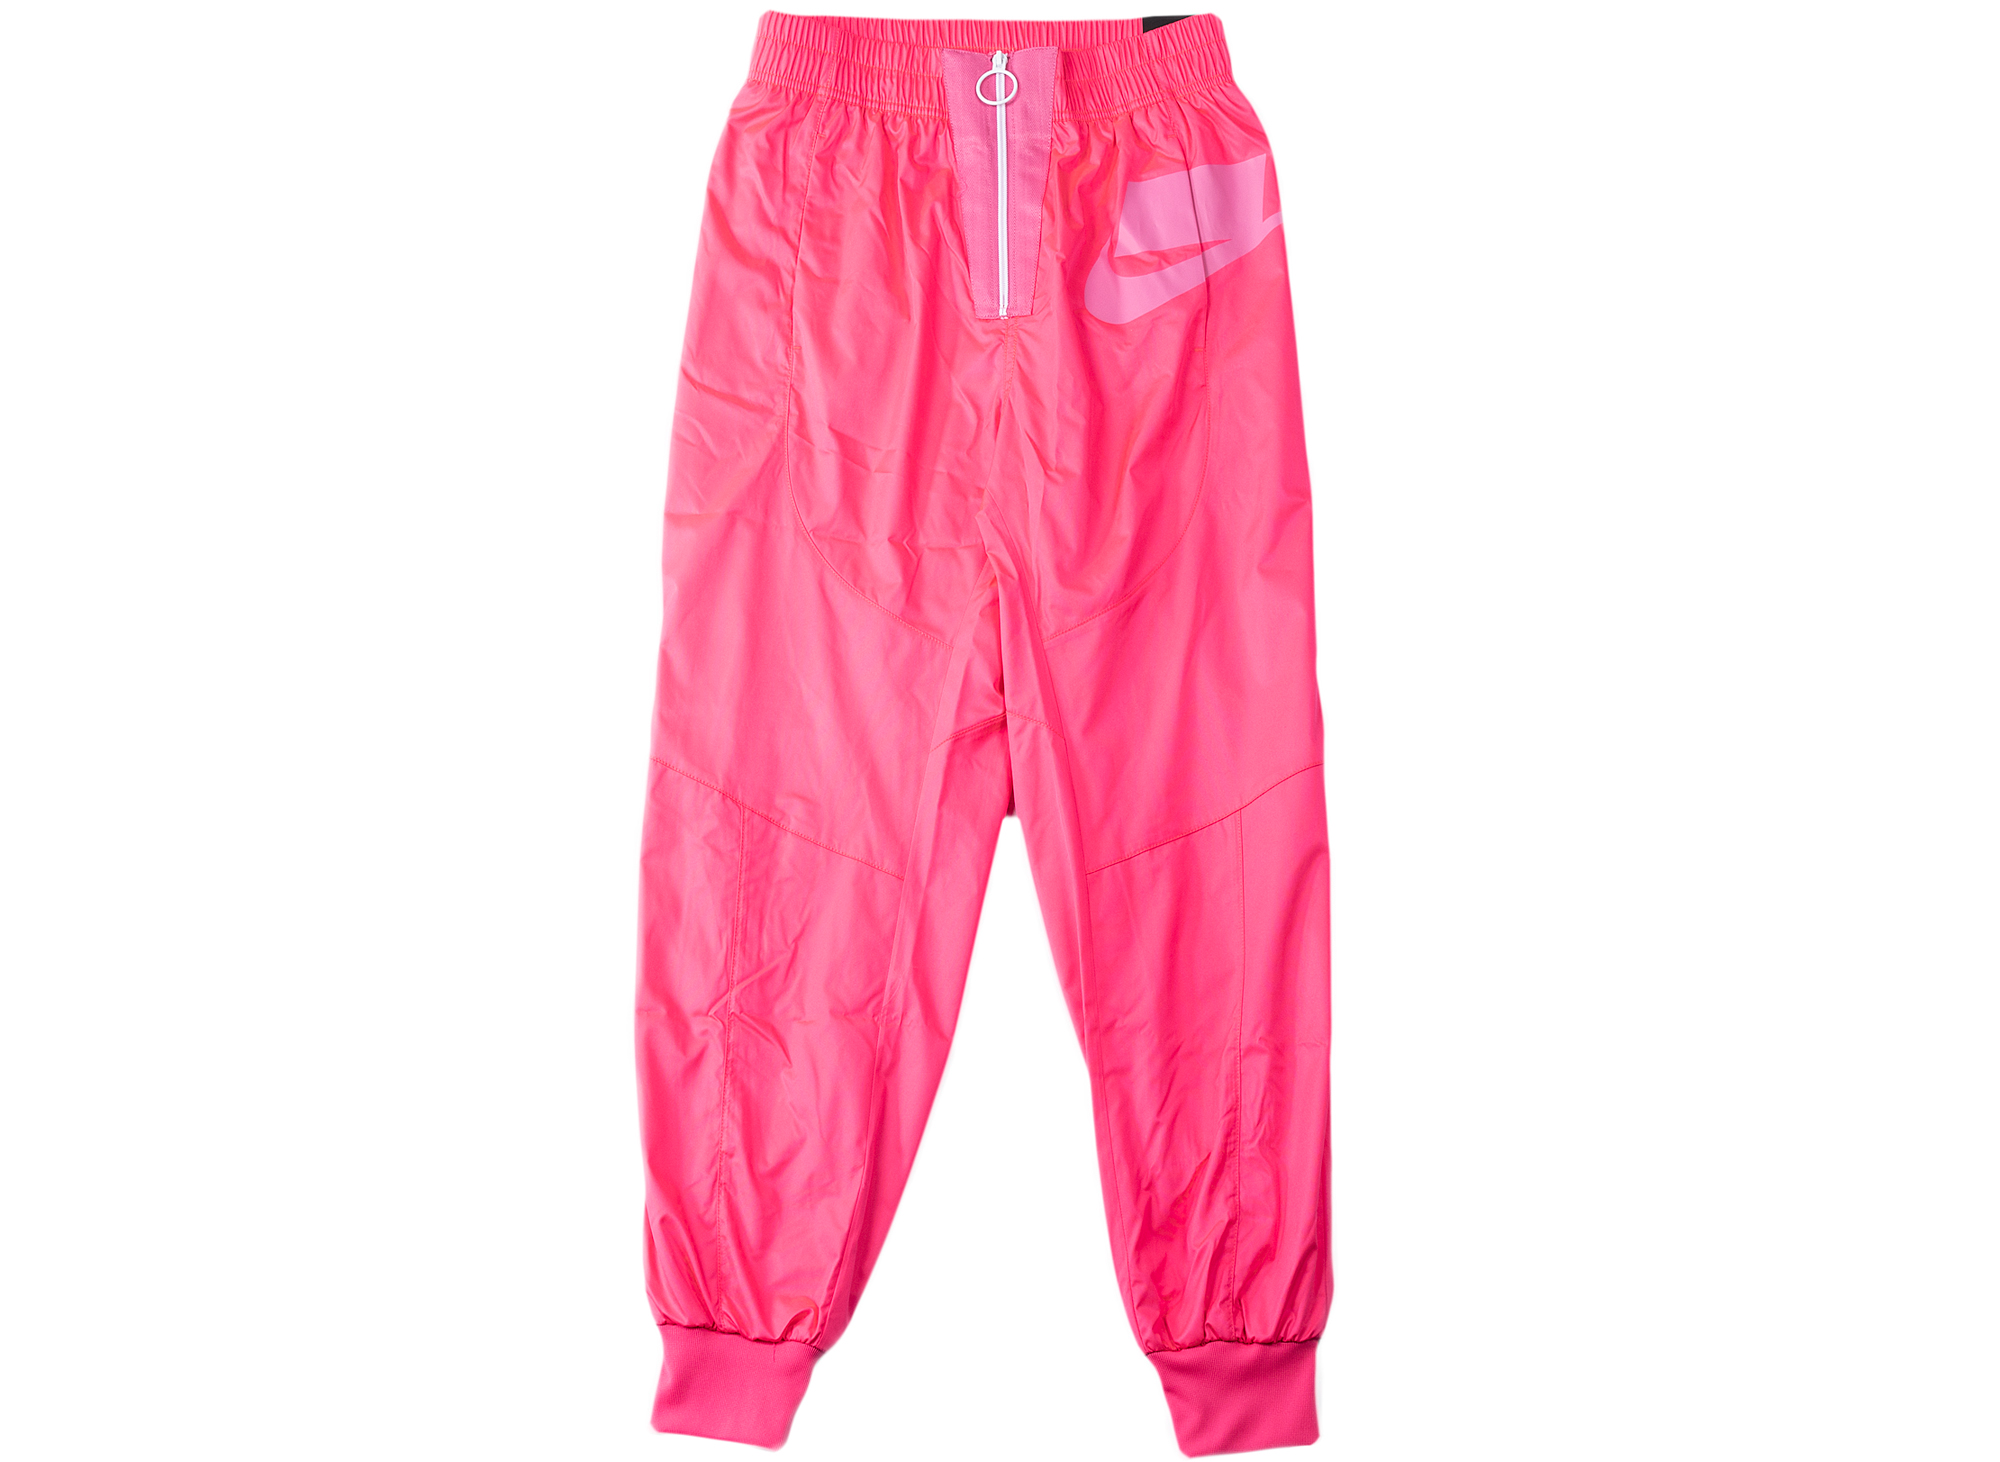 Women's Nike Sportswear NSW Woven Pants in Pink